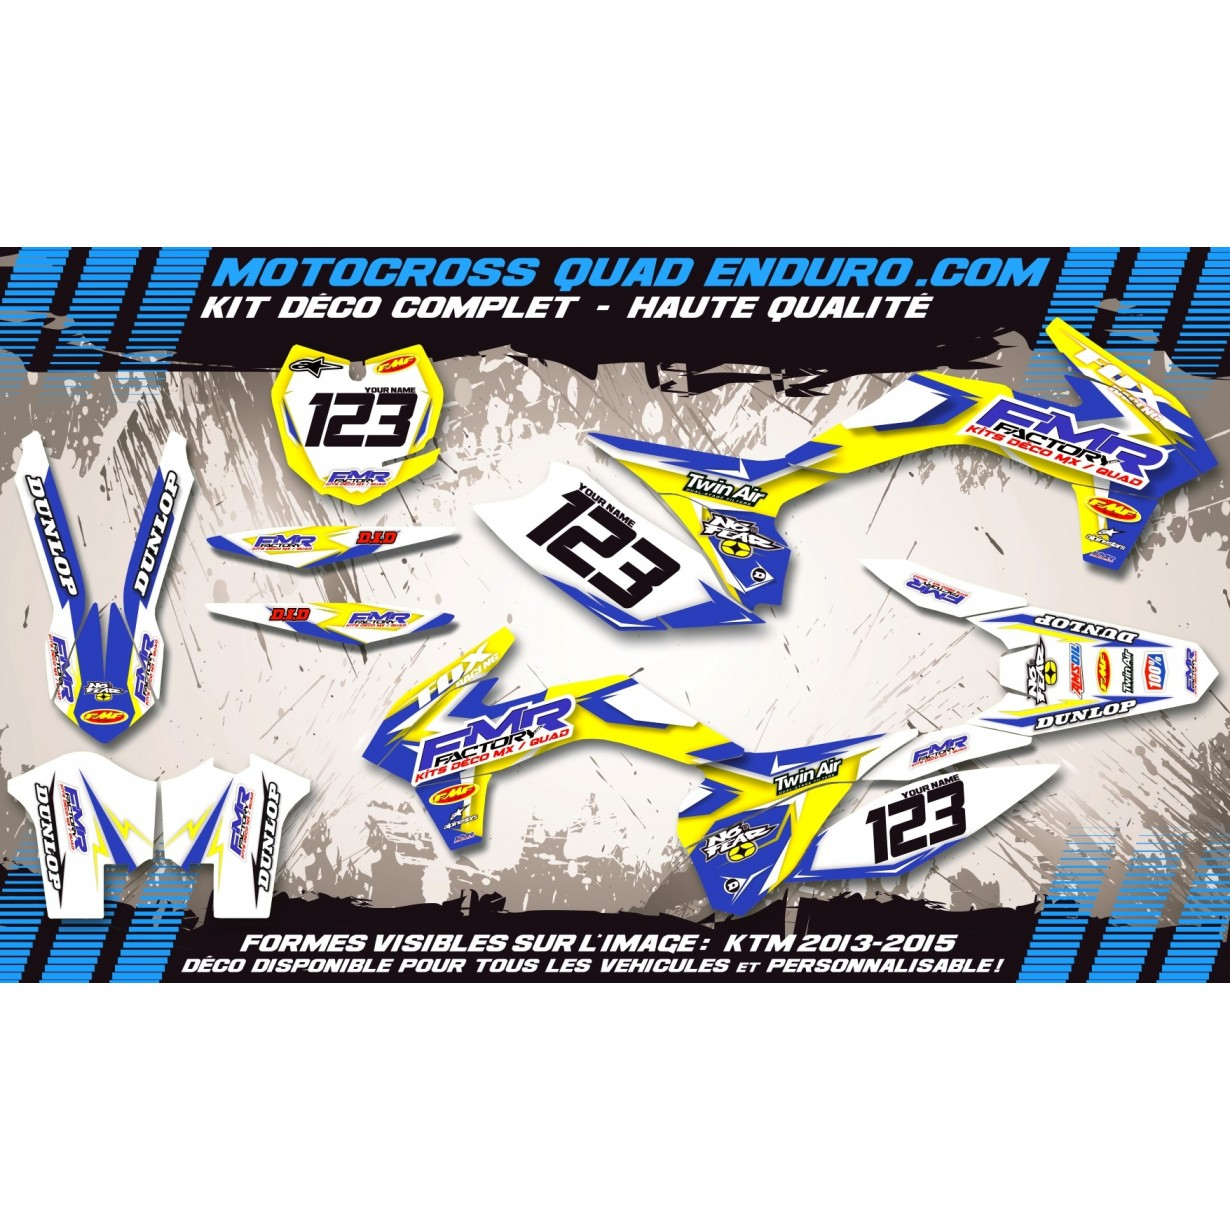 KIT DÉCO Perso TC 250 à 510 05-07 Fmr Factory MA13D